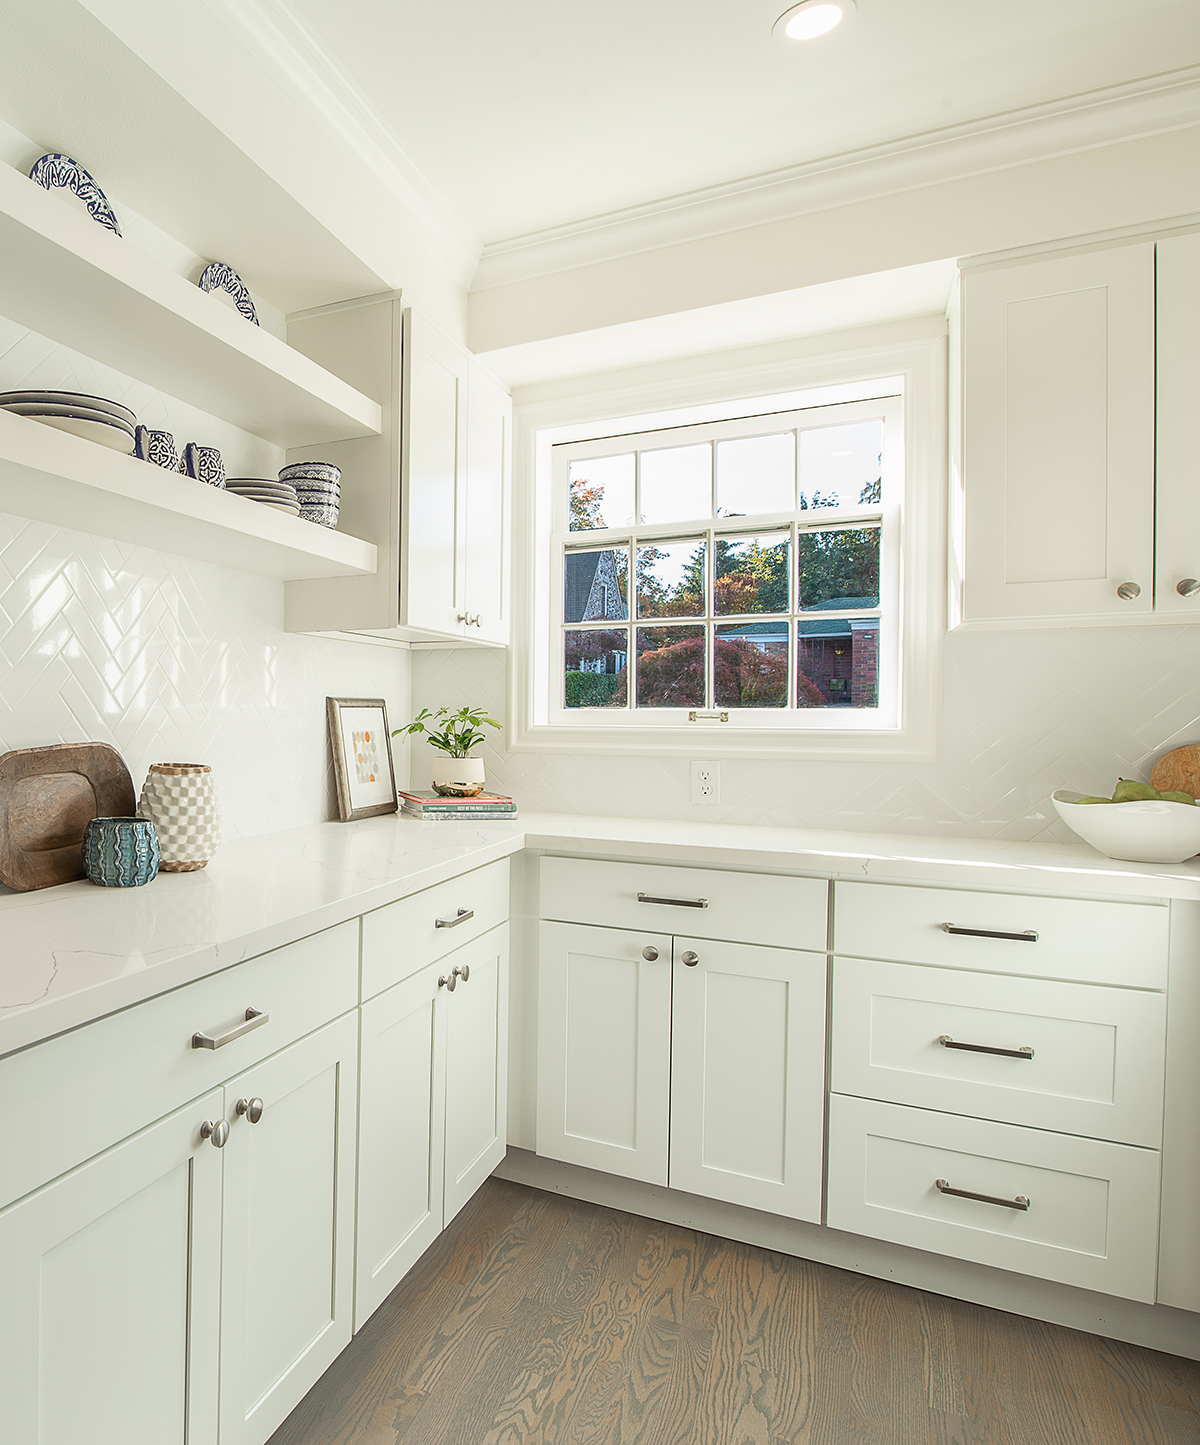 5. Cabinets - Shaker White Cabinets from GS Building Supply